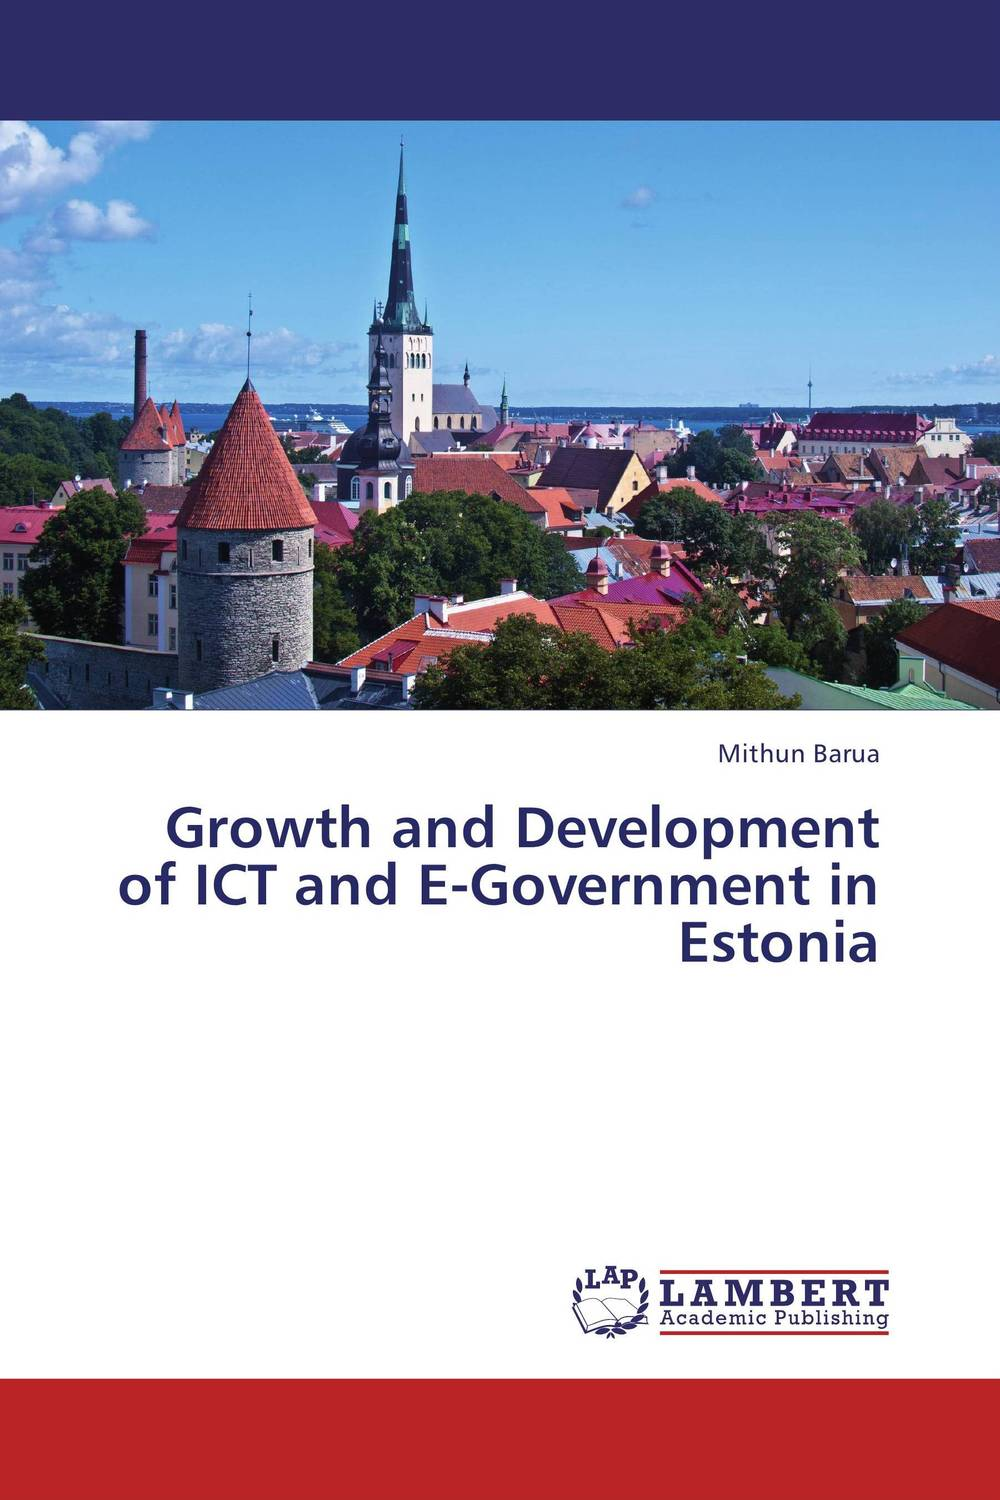 Growth and Development of ICT and E-Government in Estonia буддийский сувенир sheng good research and development ssyf a19 10